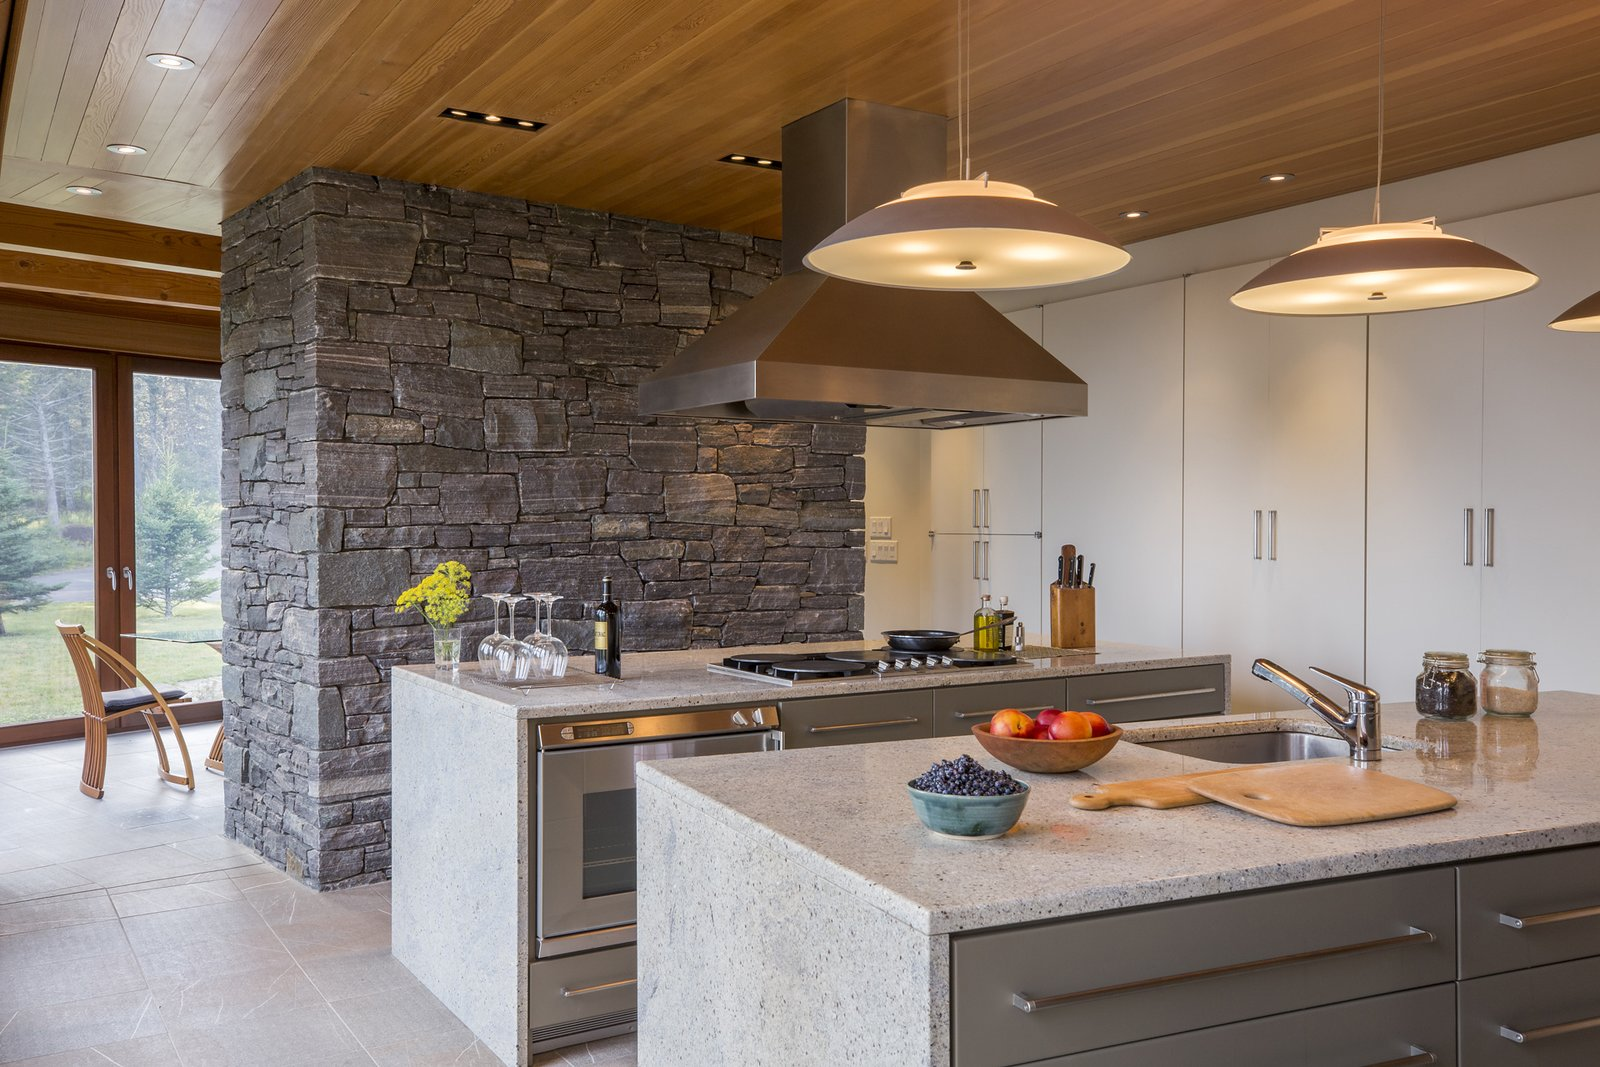 Kitchen, Granite, Colorful, Limestone, Recessed, Ceiling, Refrigerator, Wall Oven, Pendant, Cooktops, Range Hood, Dishwasher, and Undermount Kitchen, looking towards the dining room  Best Kitchen Pendant Dishwasher Range Hood Limestone Recessed Refrigerator Colorful Photos from Deep Cove House